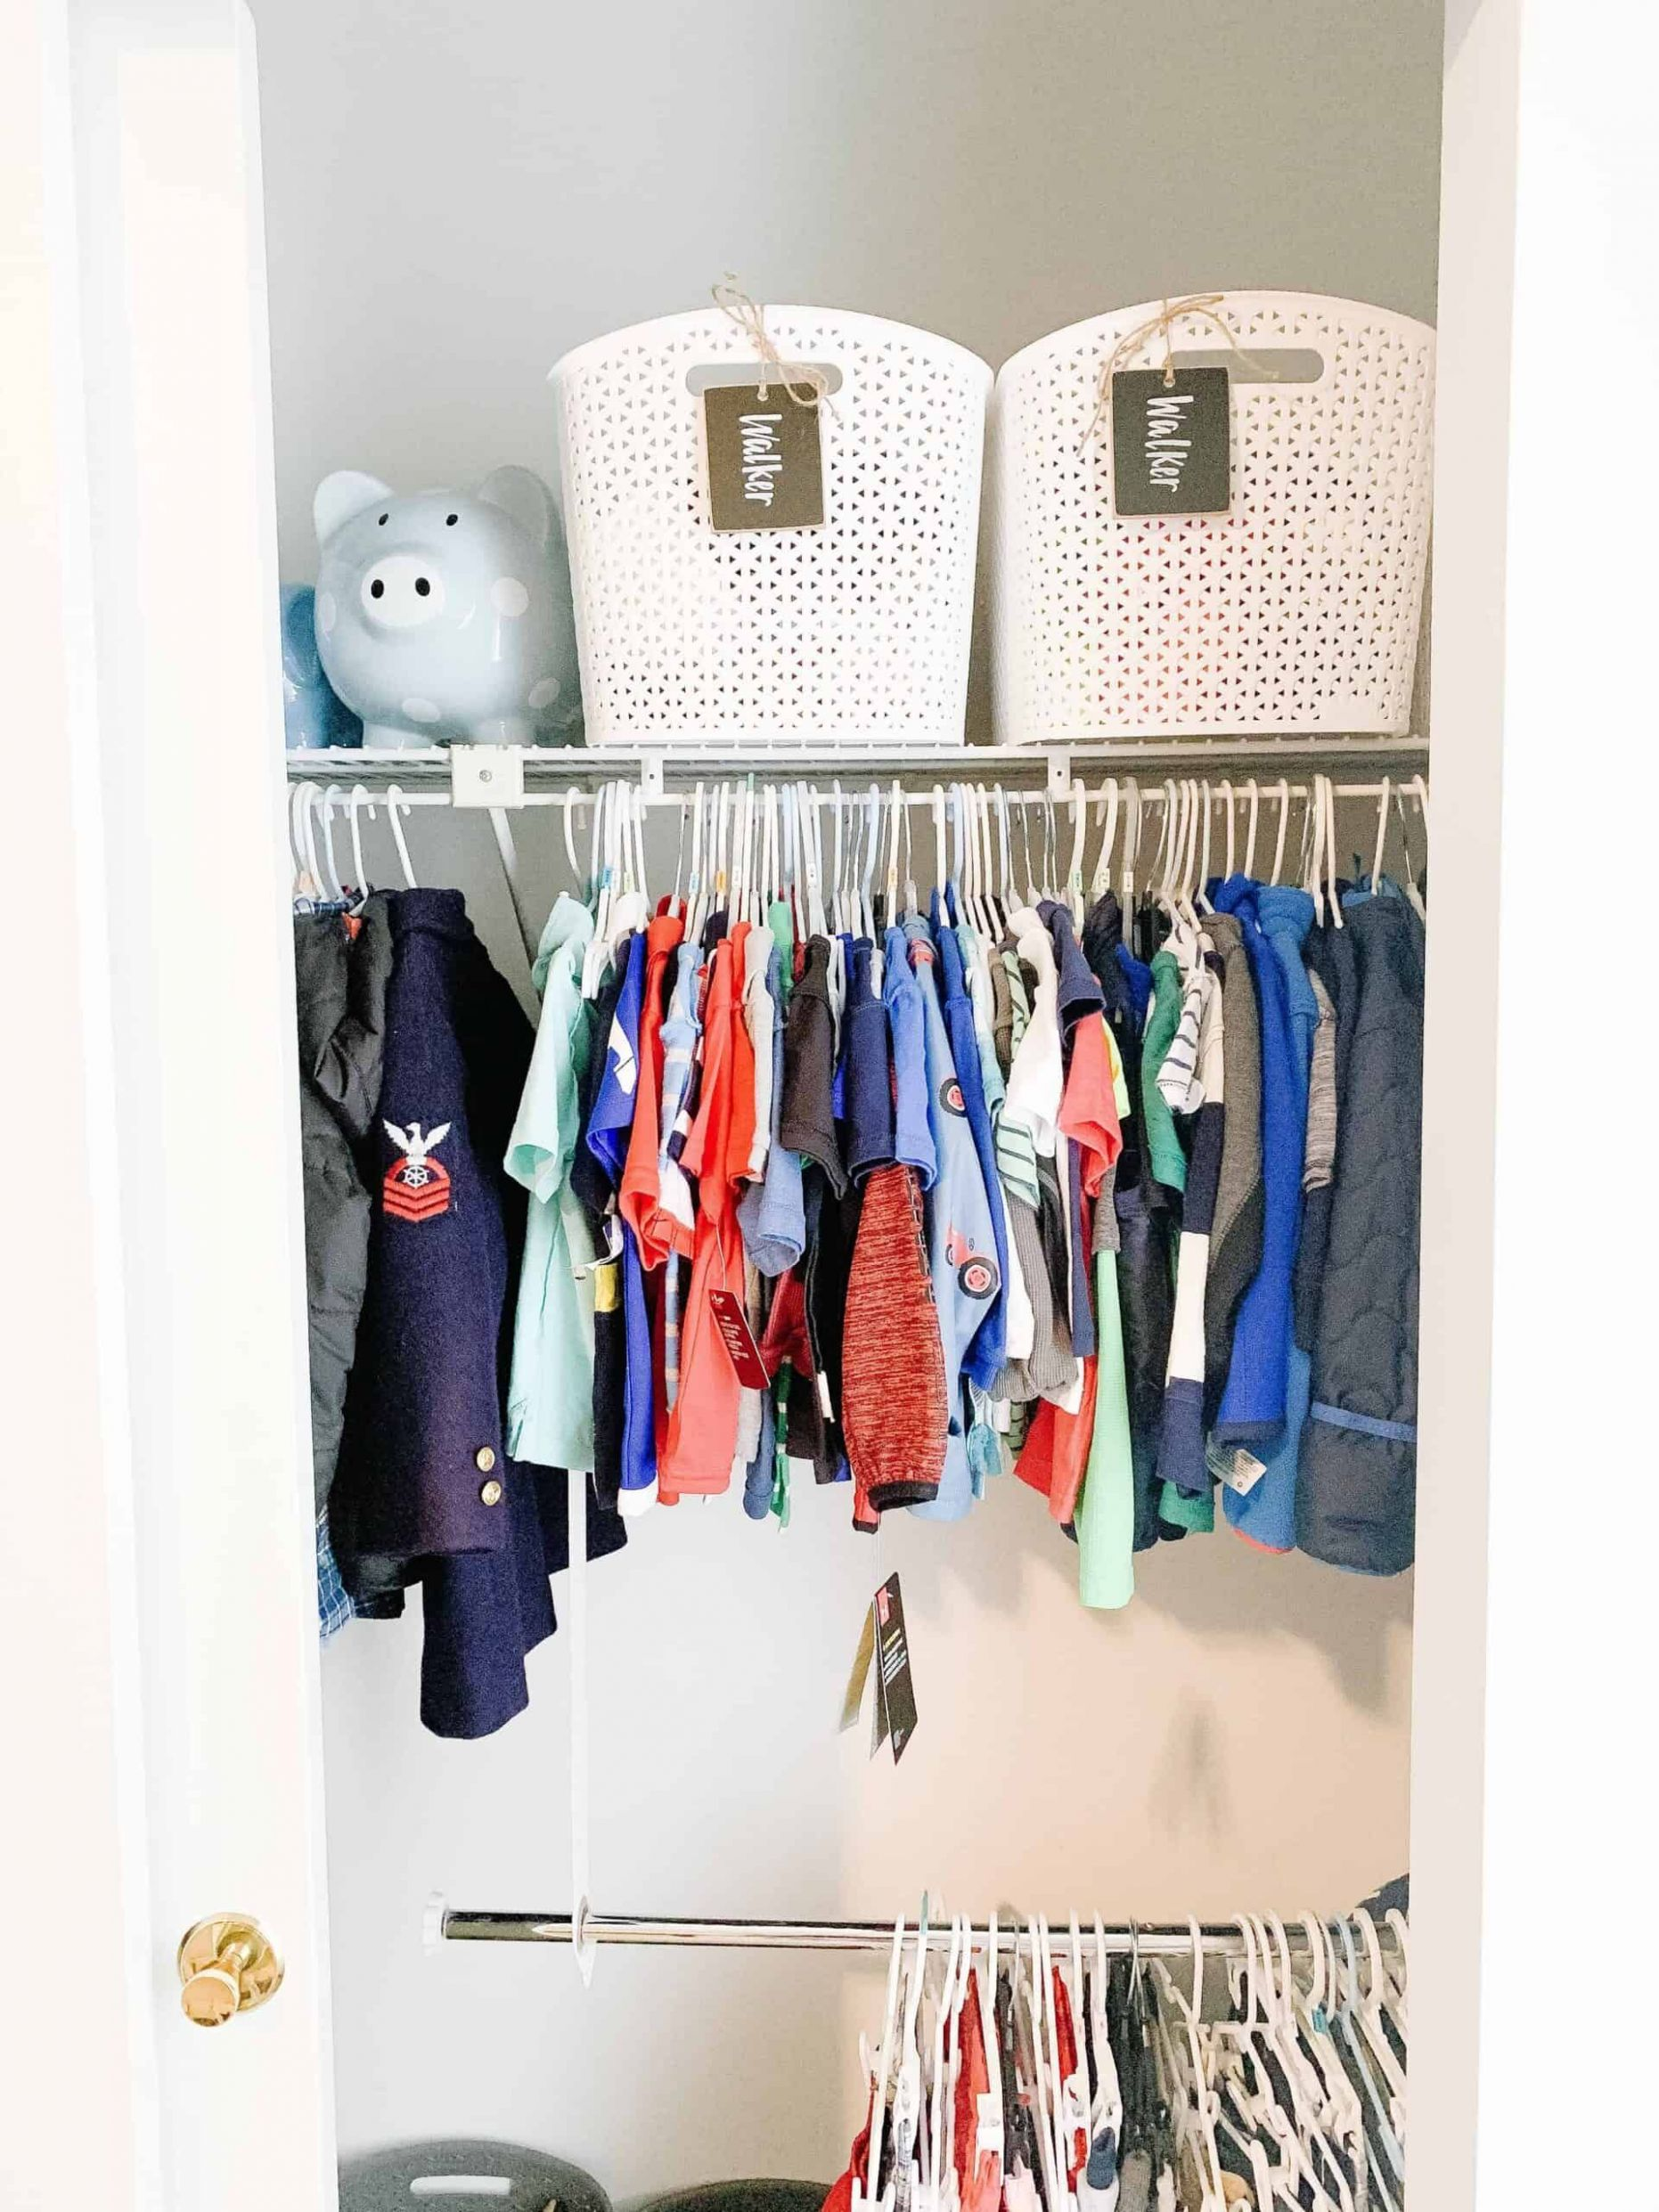 12 Closet Organization Ideas - Best DIY Closet Organizers - closet hook ideas